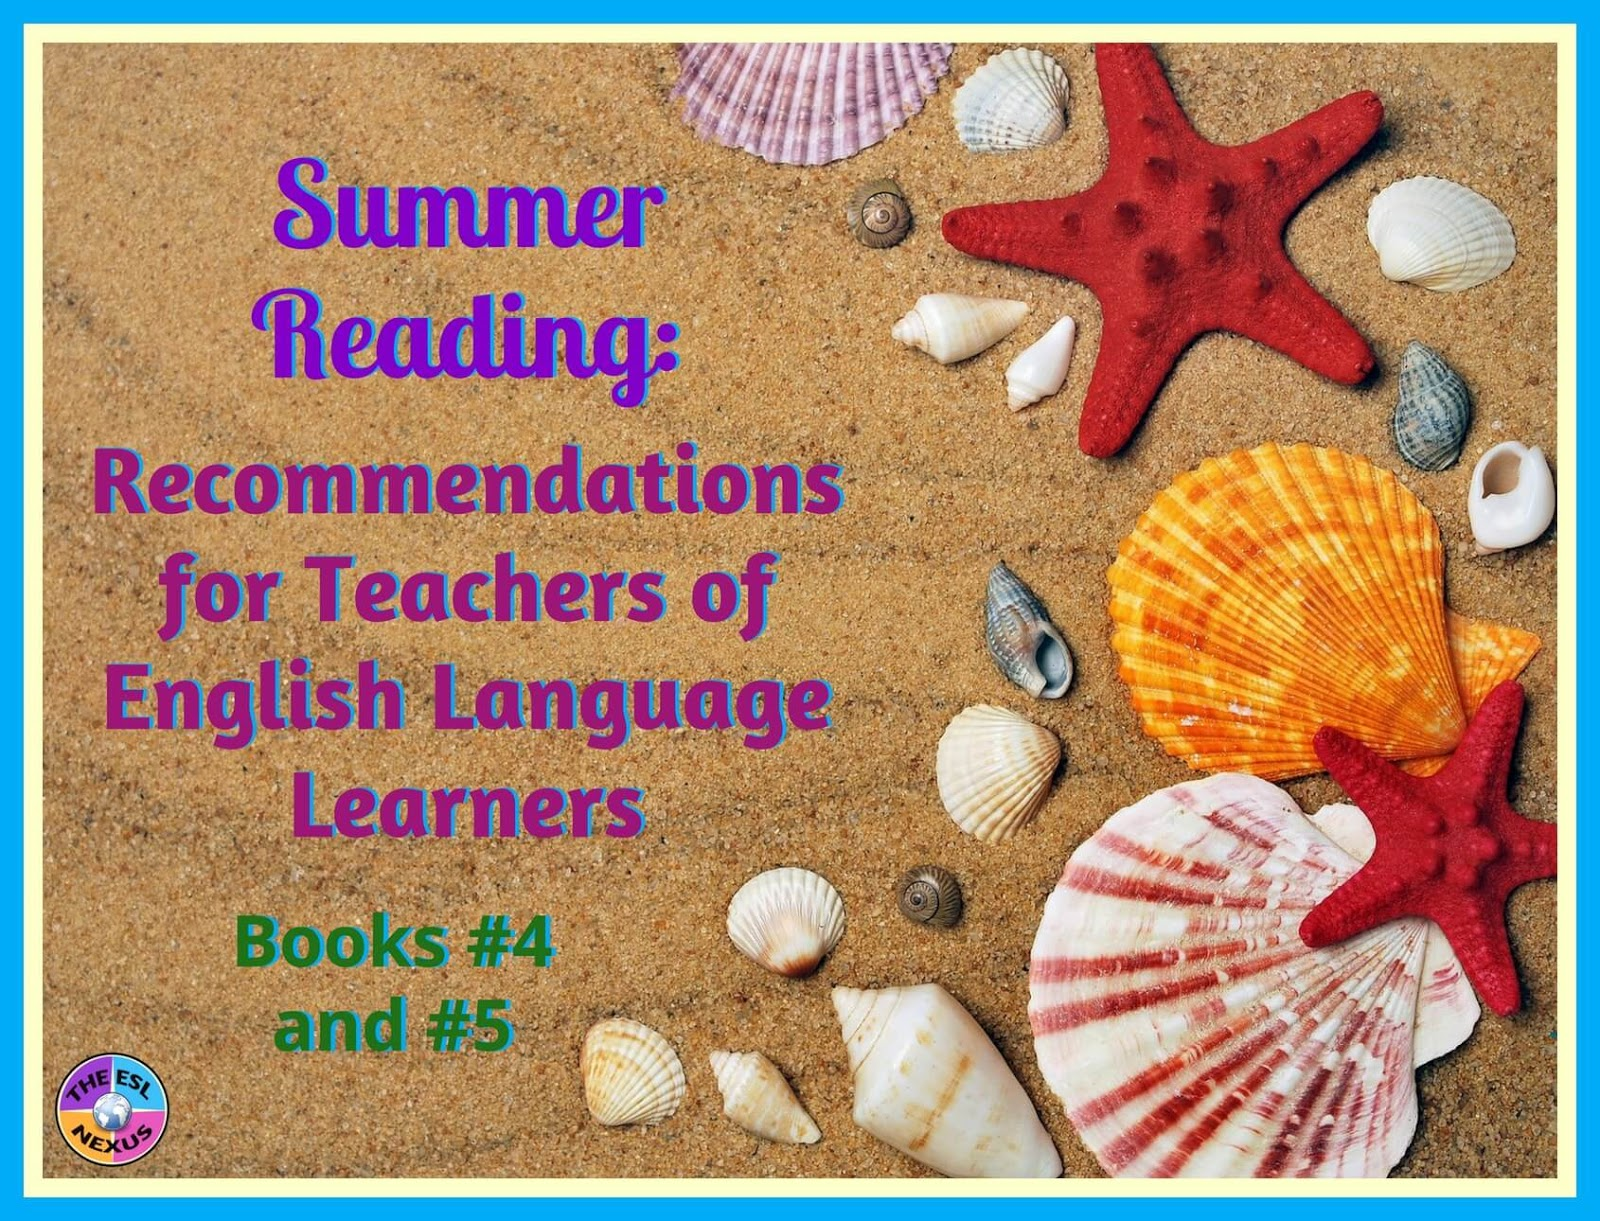 Part 4 in a series of book recommendations that are useful for teachers of ELLs | The ESL Nexus